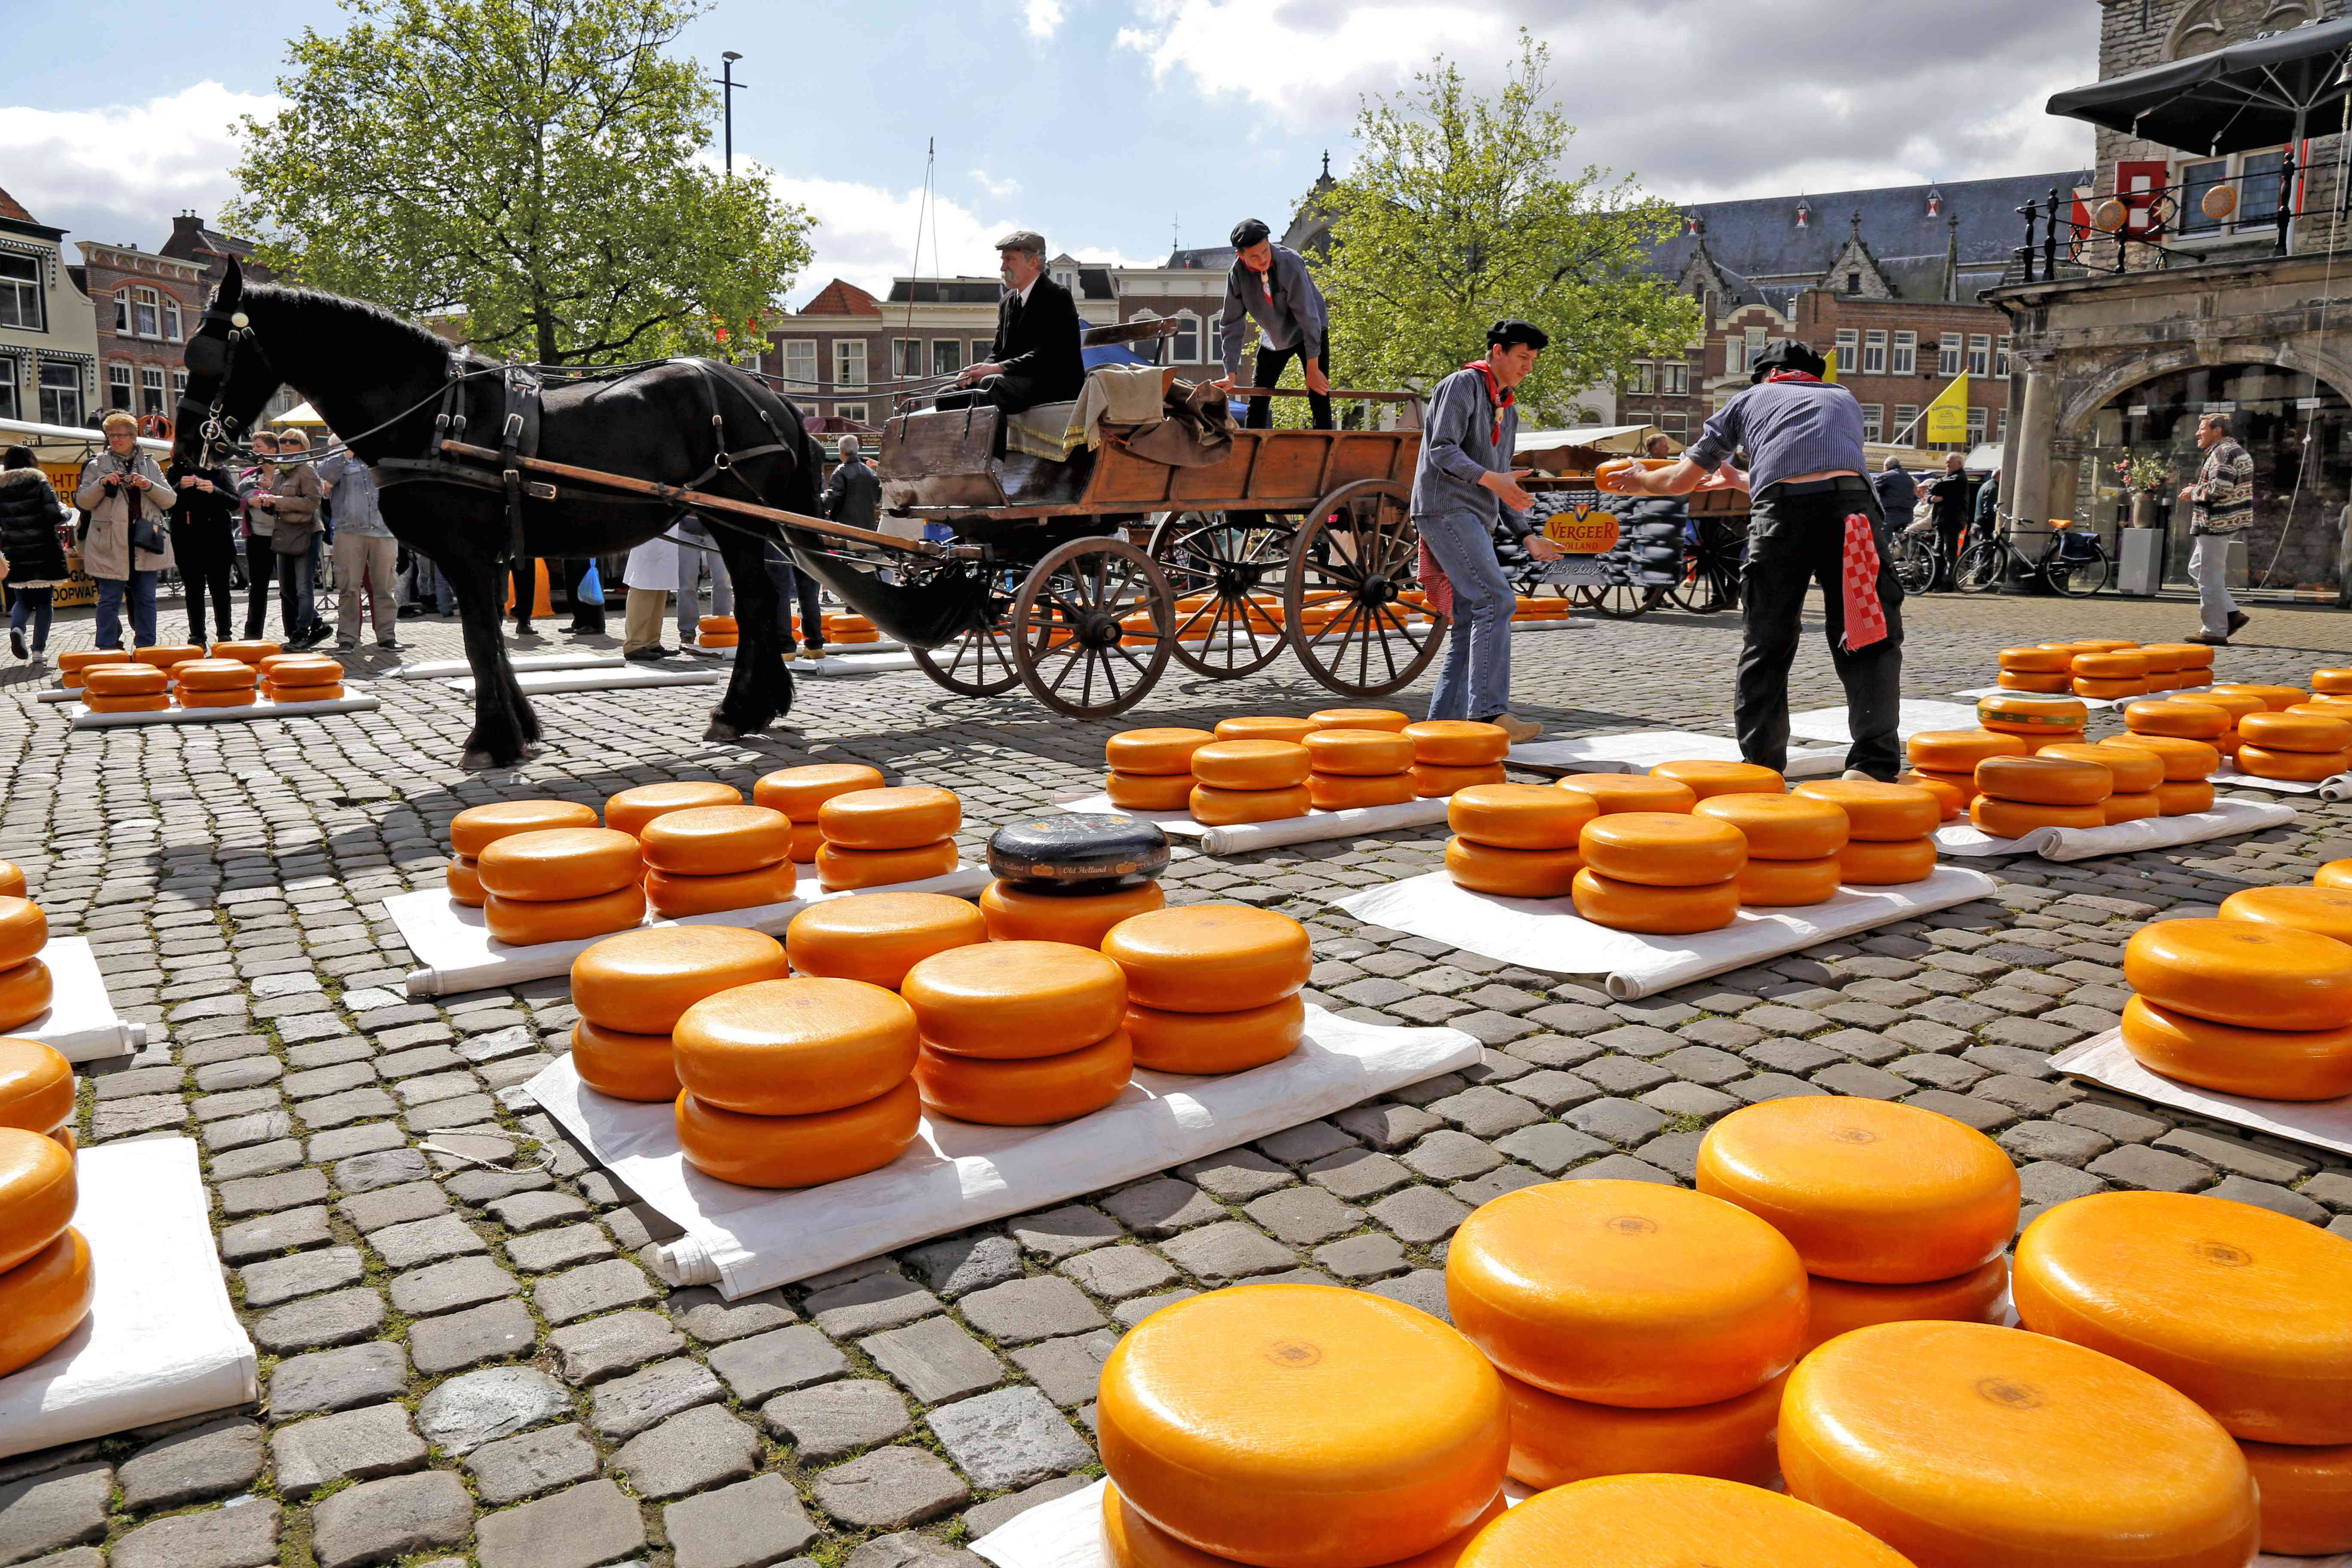 Horse-drawn carriage going page a bumc of gouda cheese wheels at the Gouda cheese market, Gouda, Netherlands